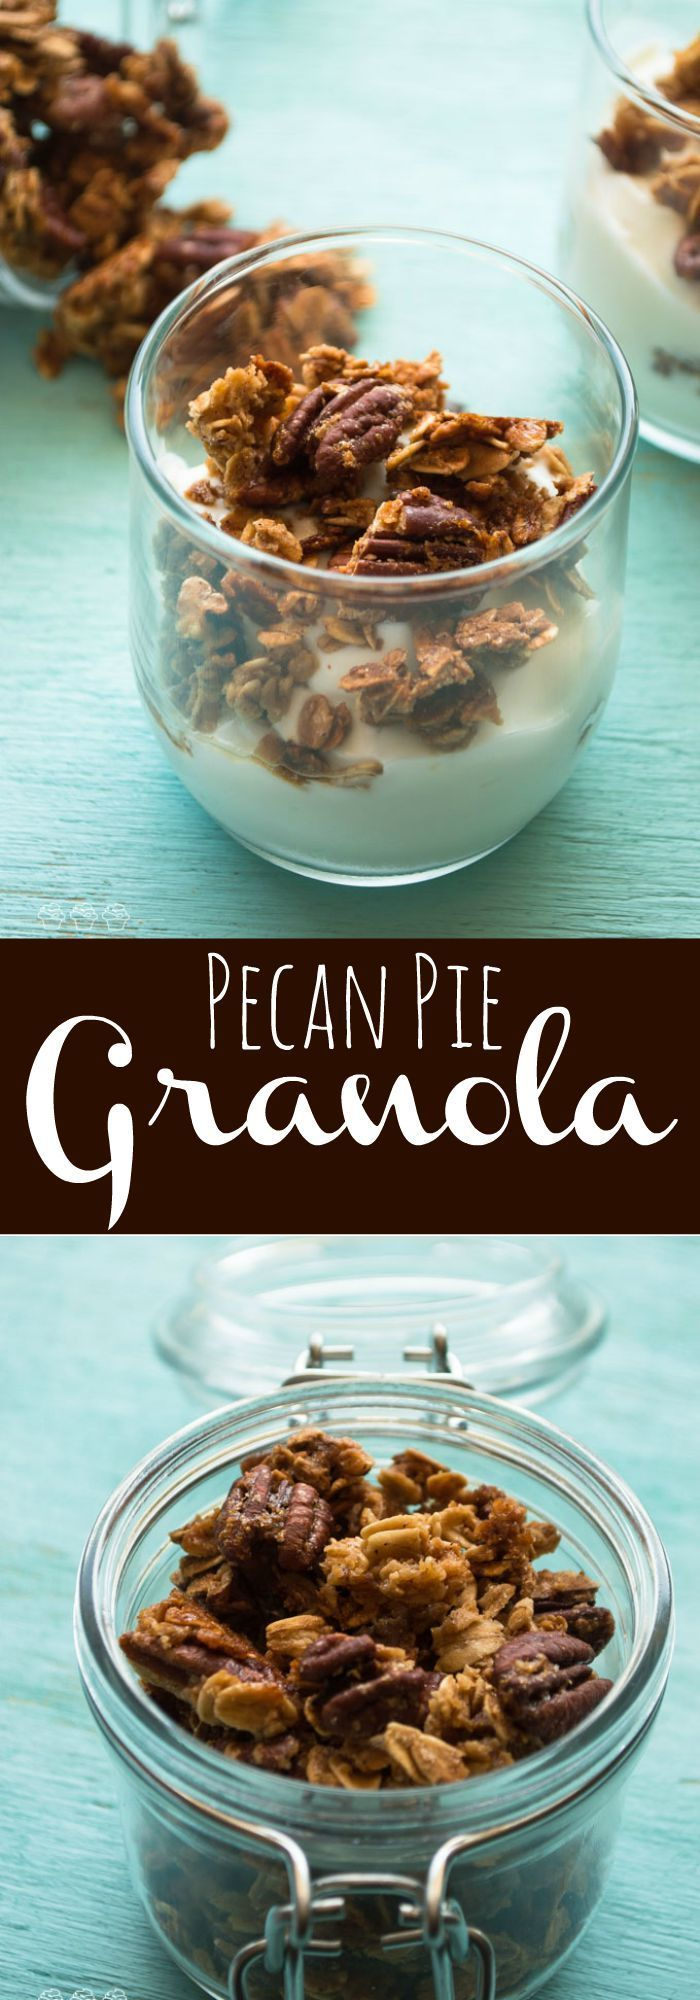 Enjoy the classic fall flavors of pecan pie with this crunchy treat including roasted pecans and a hint of cinnamon.